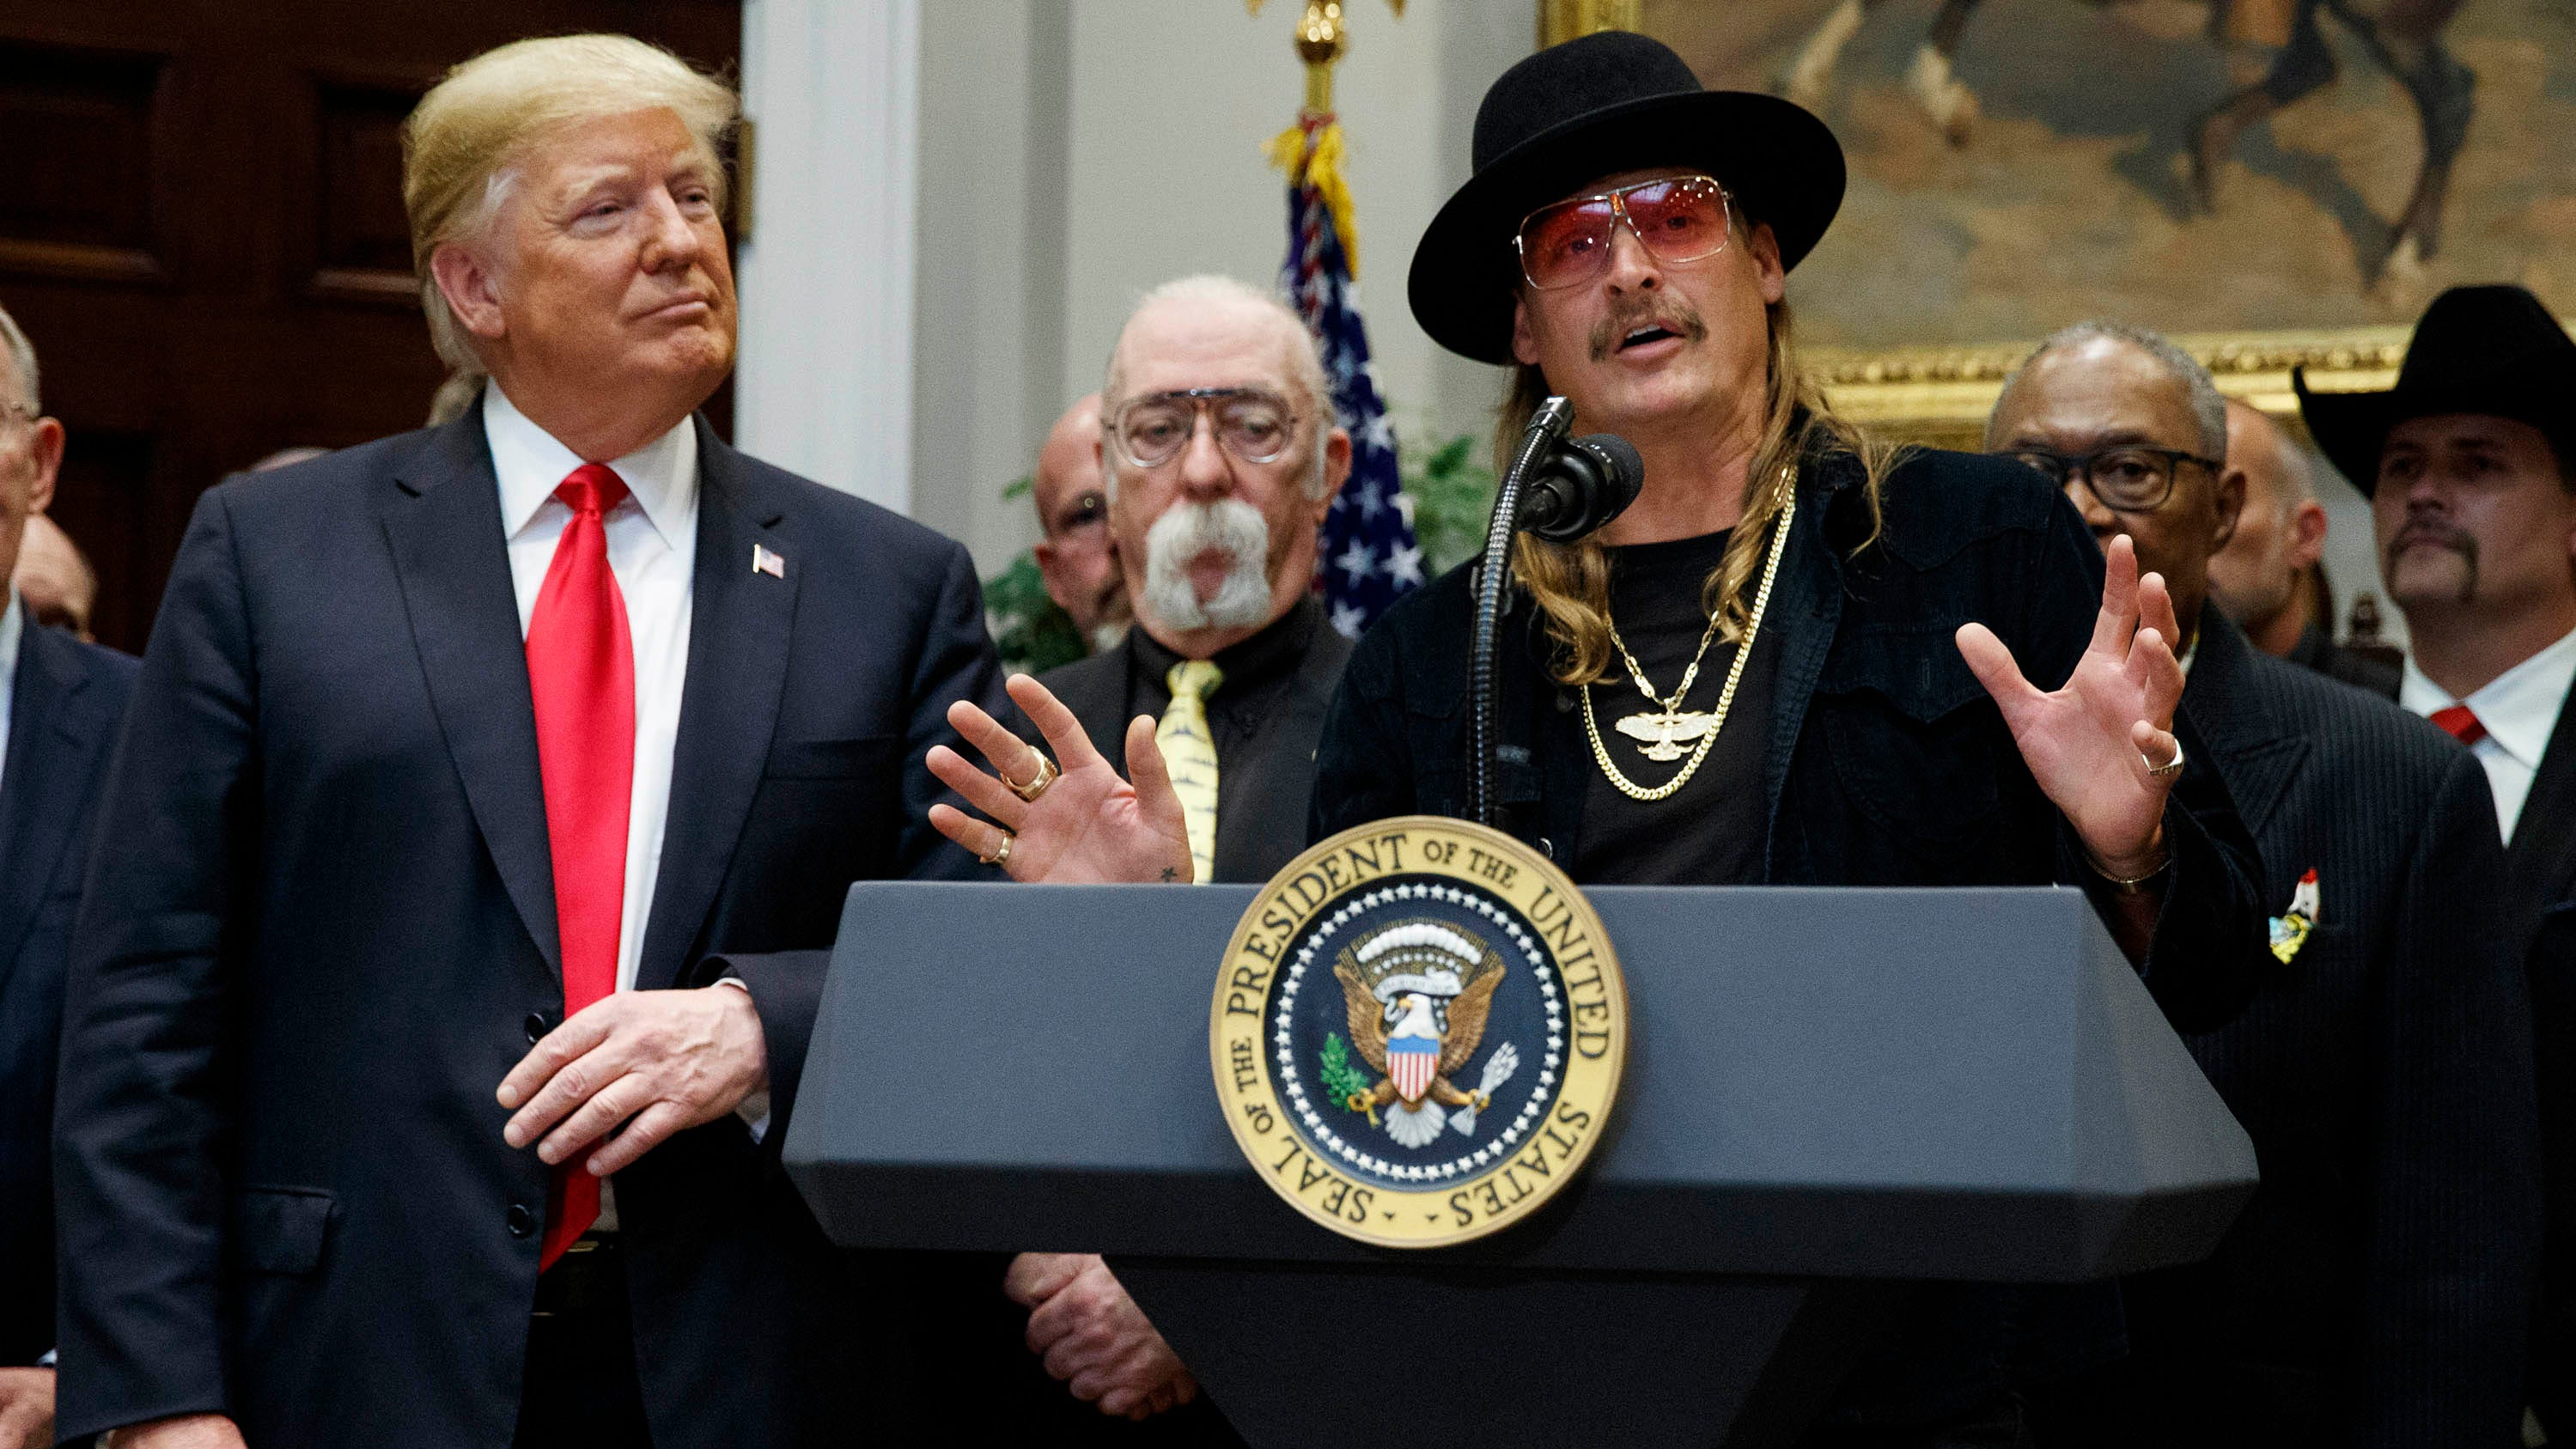 Kid Rock To Join Trump Rally In Michigan With Donald Trump Jr